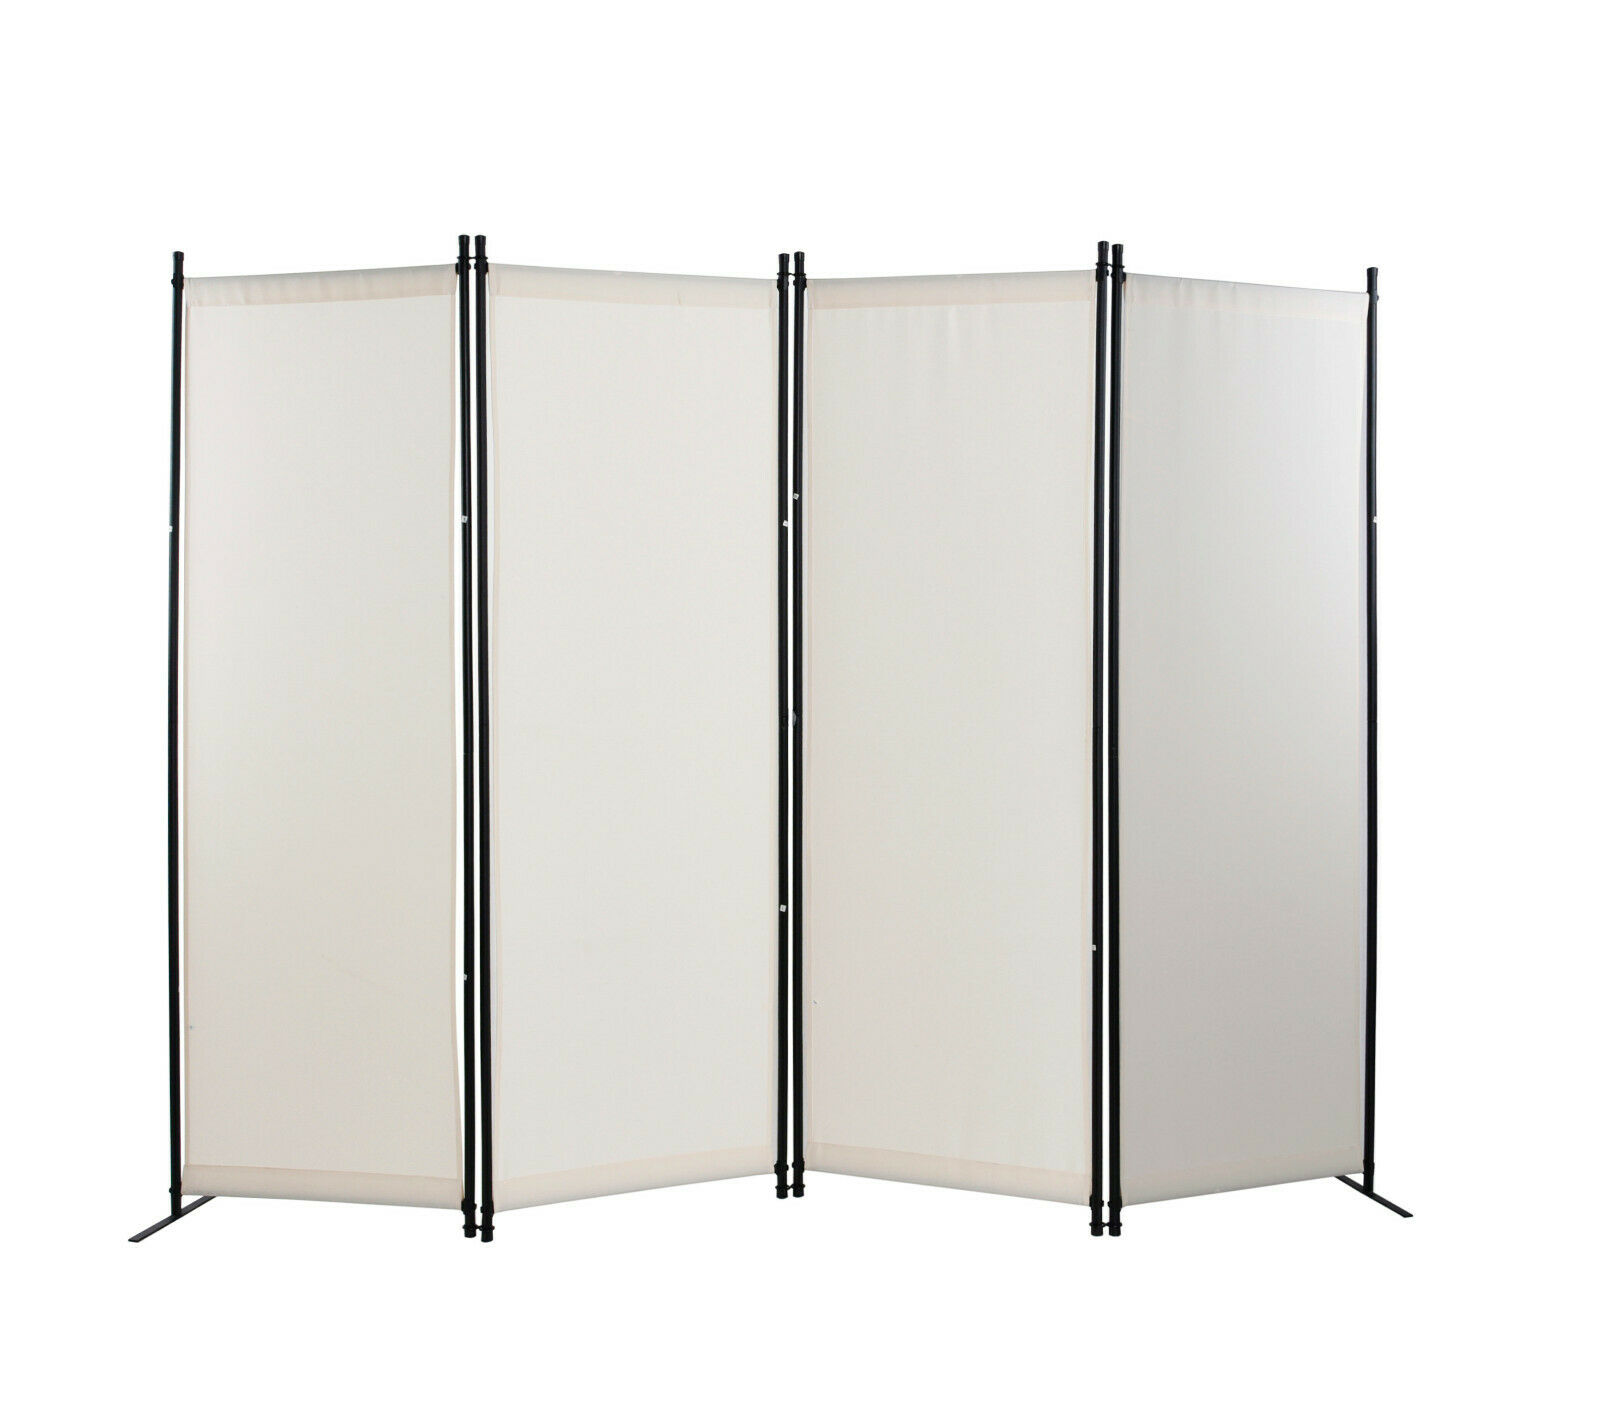 4 Panel Room Divider Privacy Screens Home Office Accents Fur